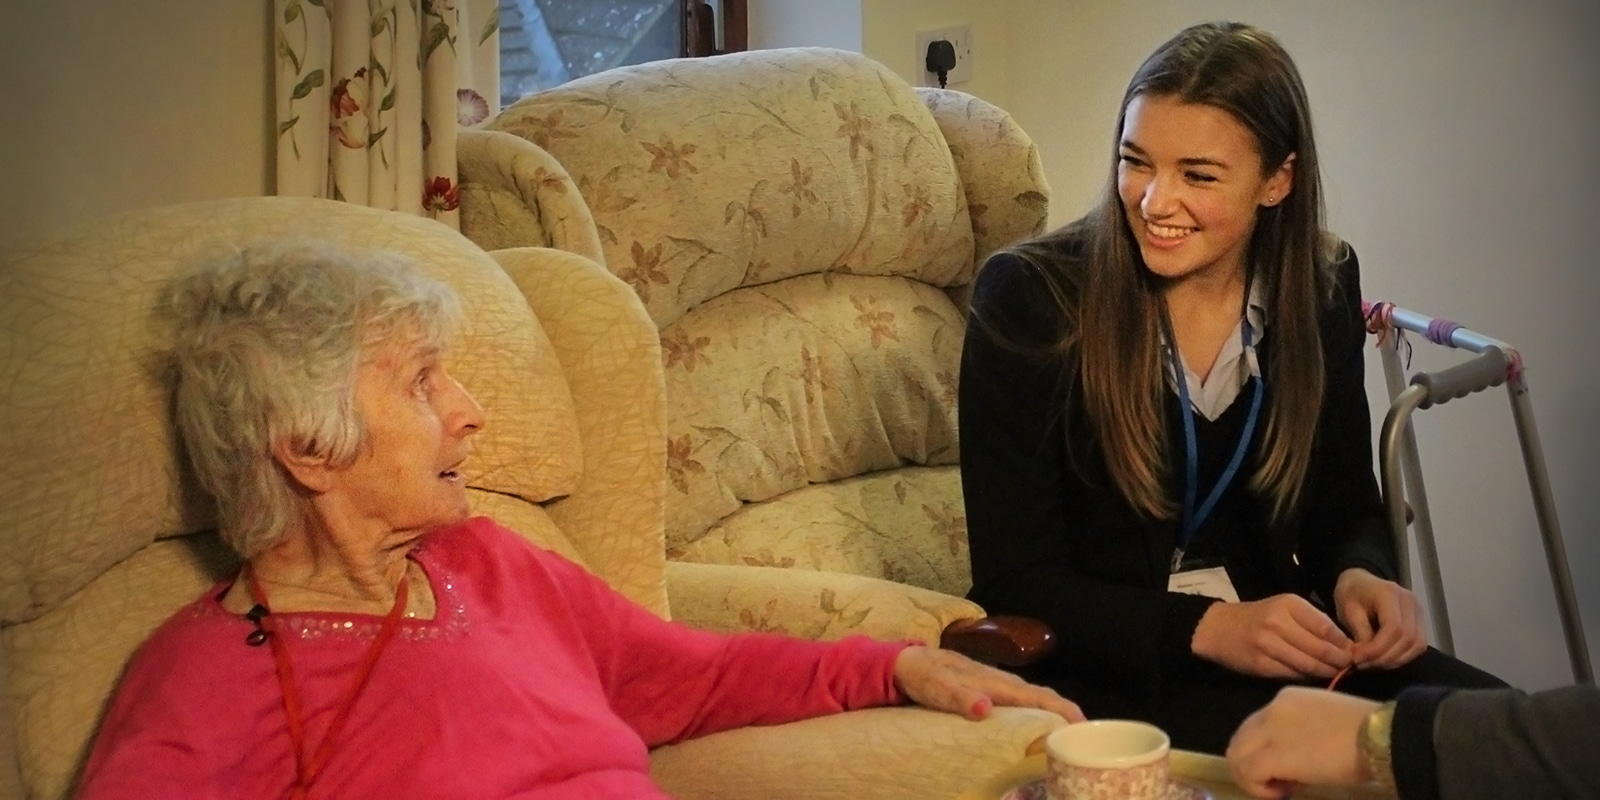 A Sixth Form Student Visiting a Care Home, being of service